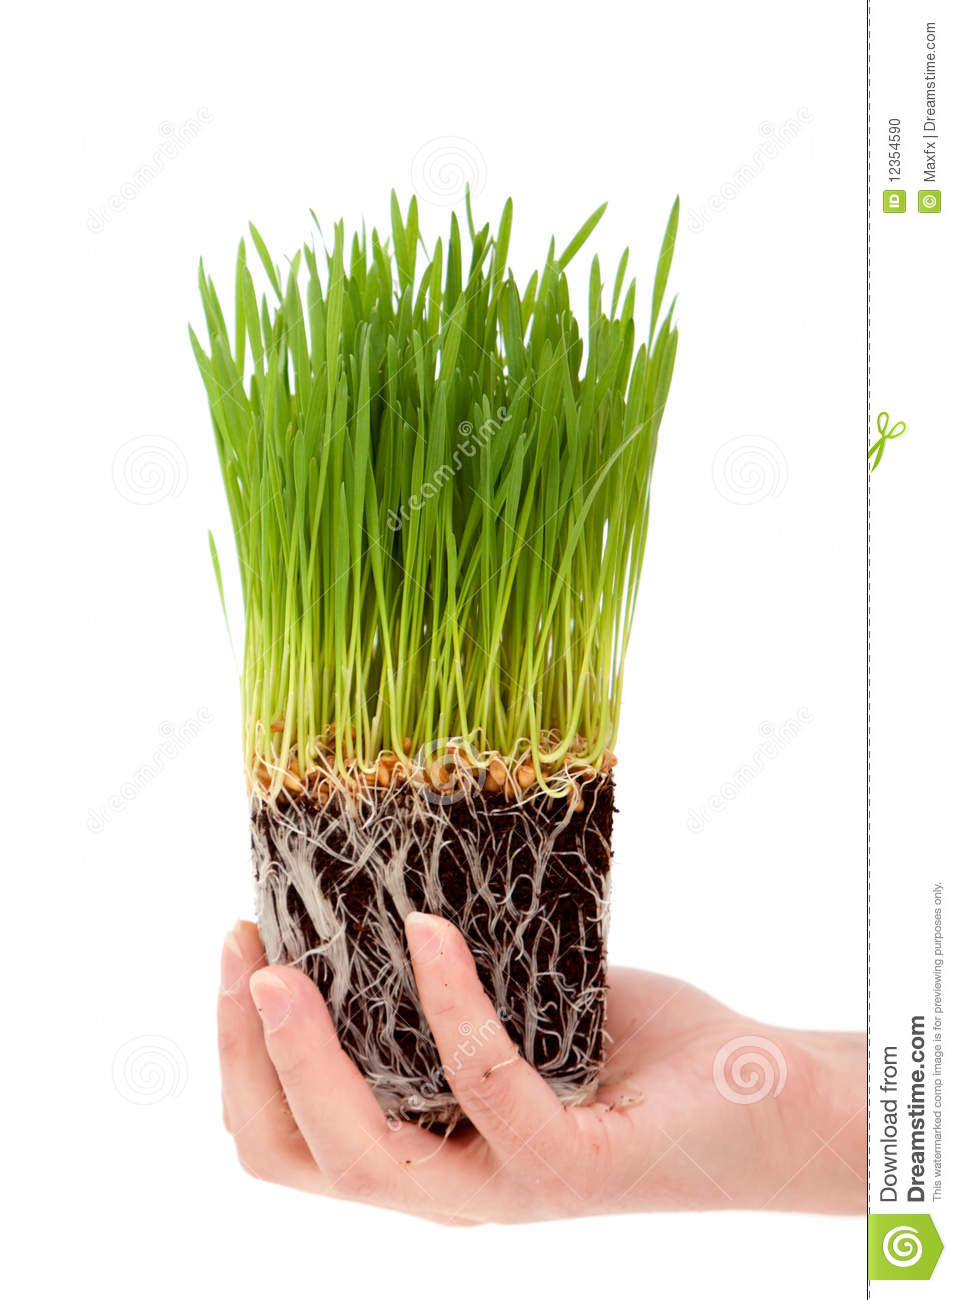 Wheatgrass business plan